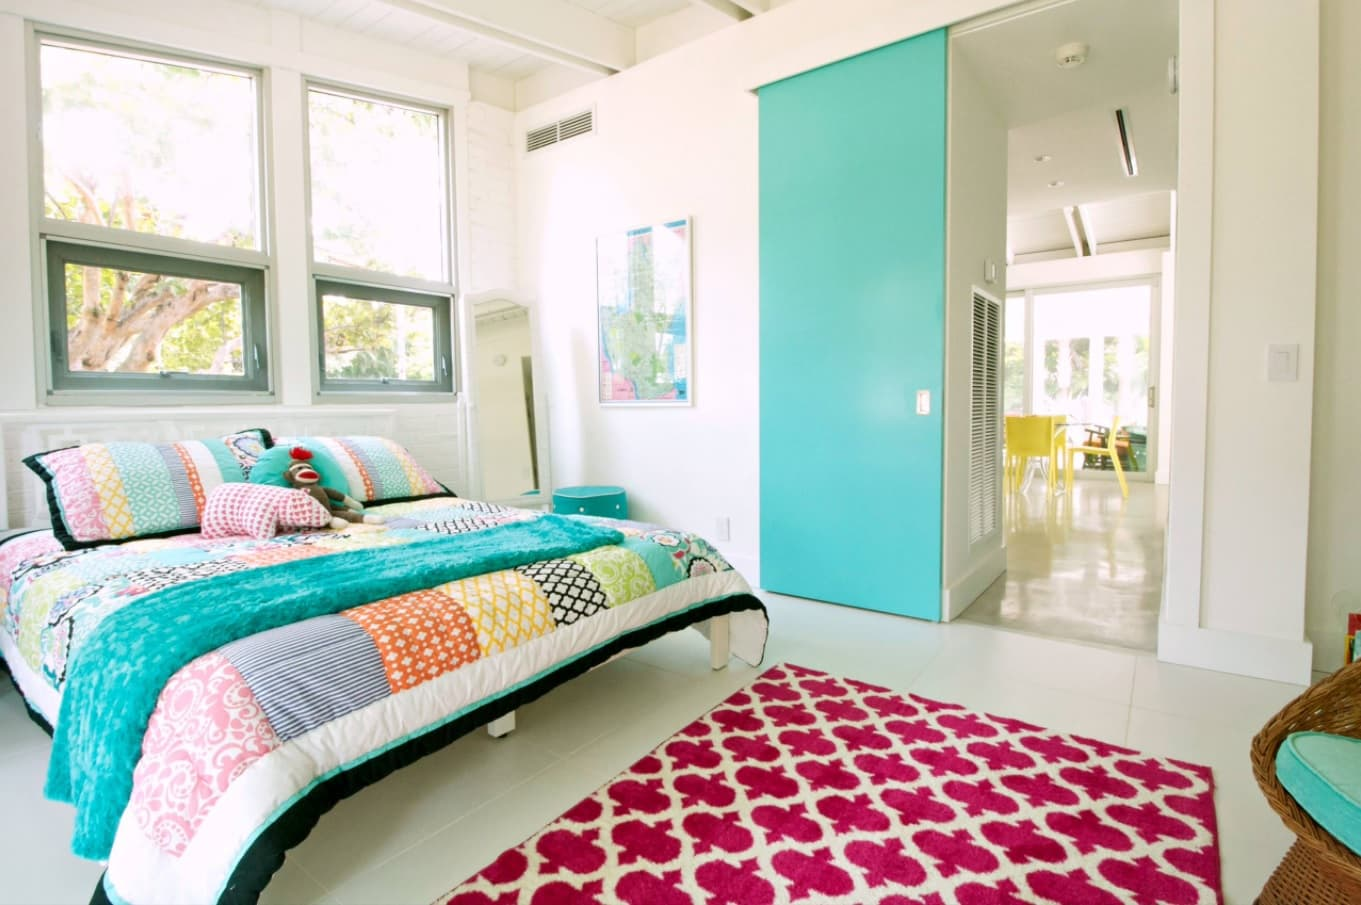 4 Must-Have Bed Coverings You Cannot Miss. Unusual modern styled design of the room with red patterned rug and turquoise sliding door